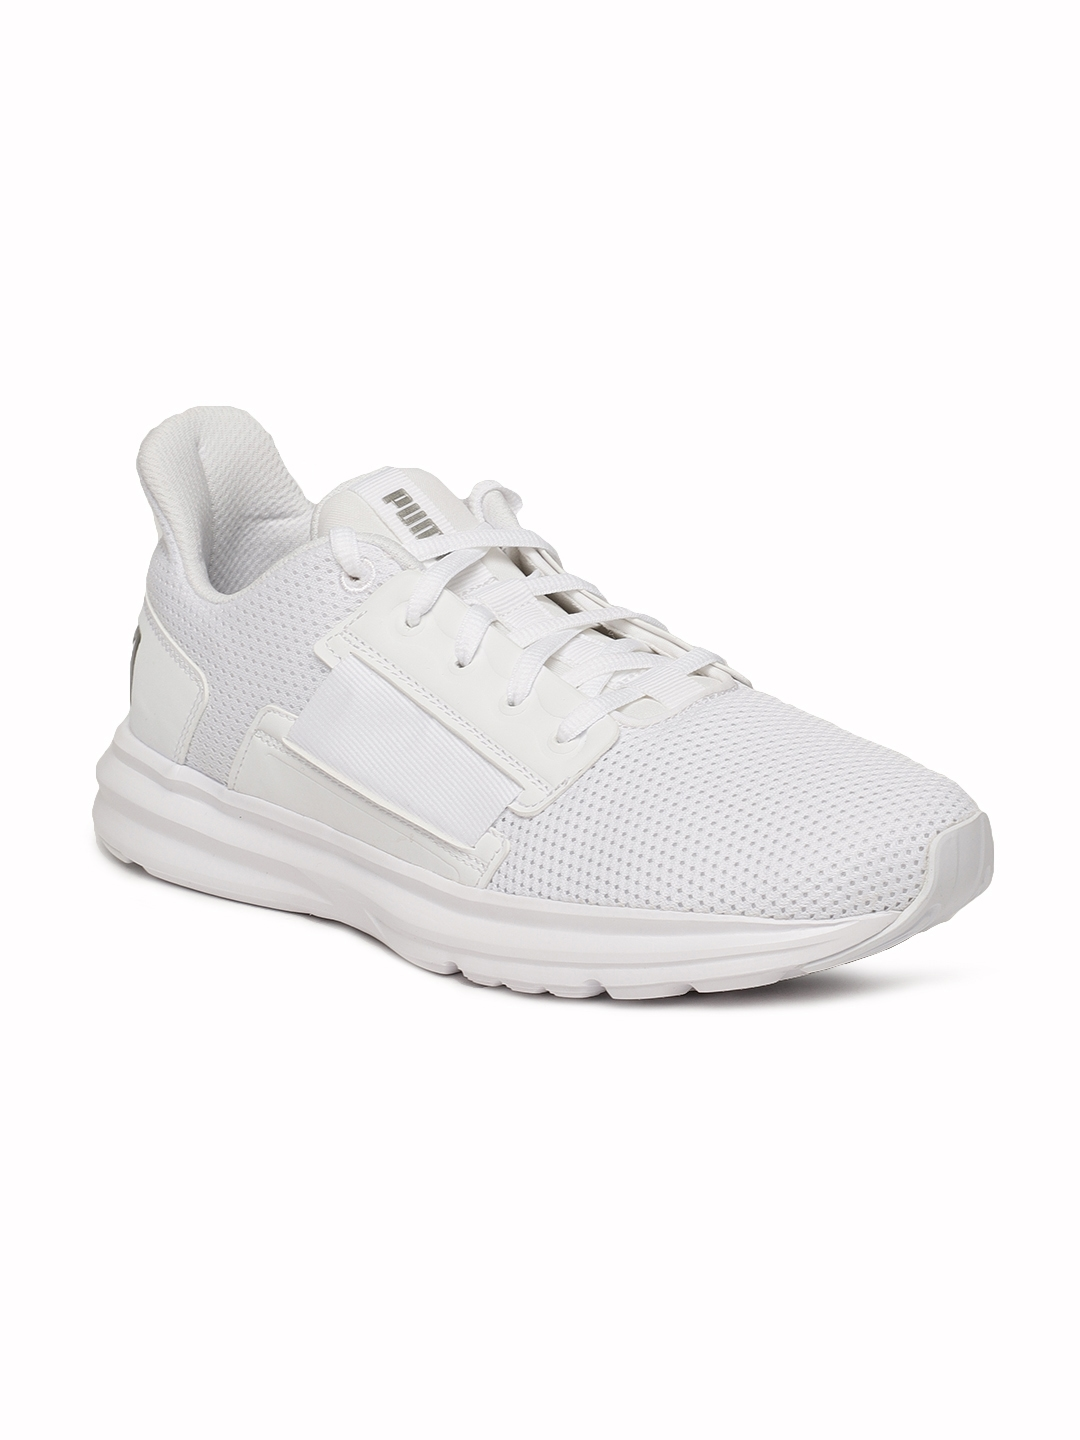 864ced29214 Buy Puma Women White Enzo Street Training Shoes - Sports Shoes for ...